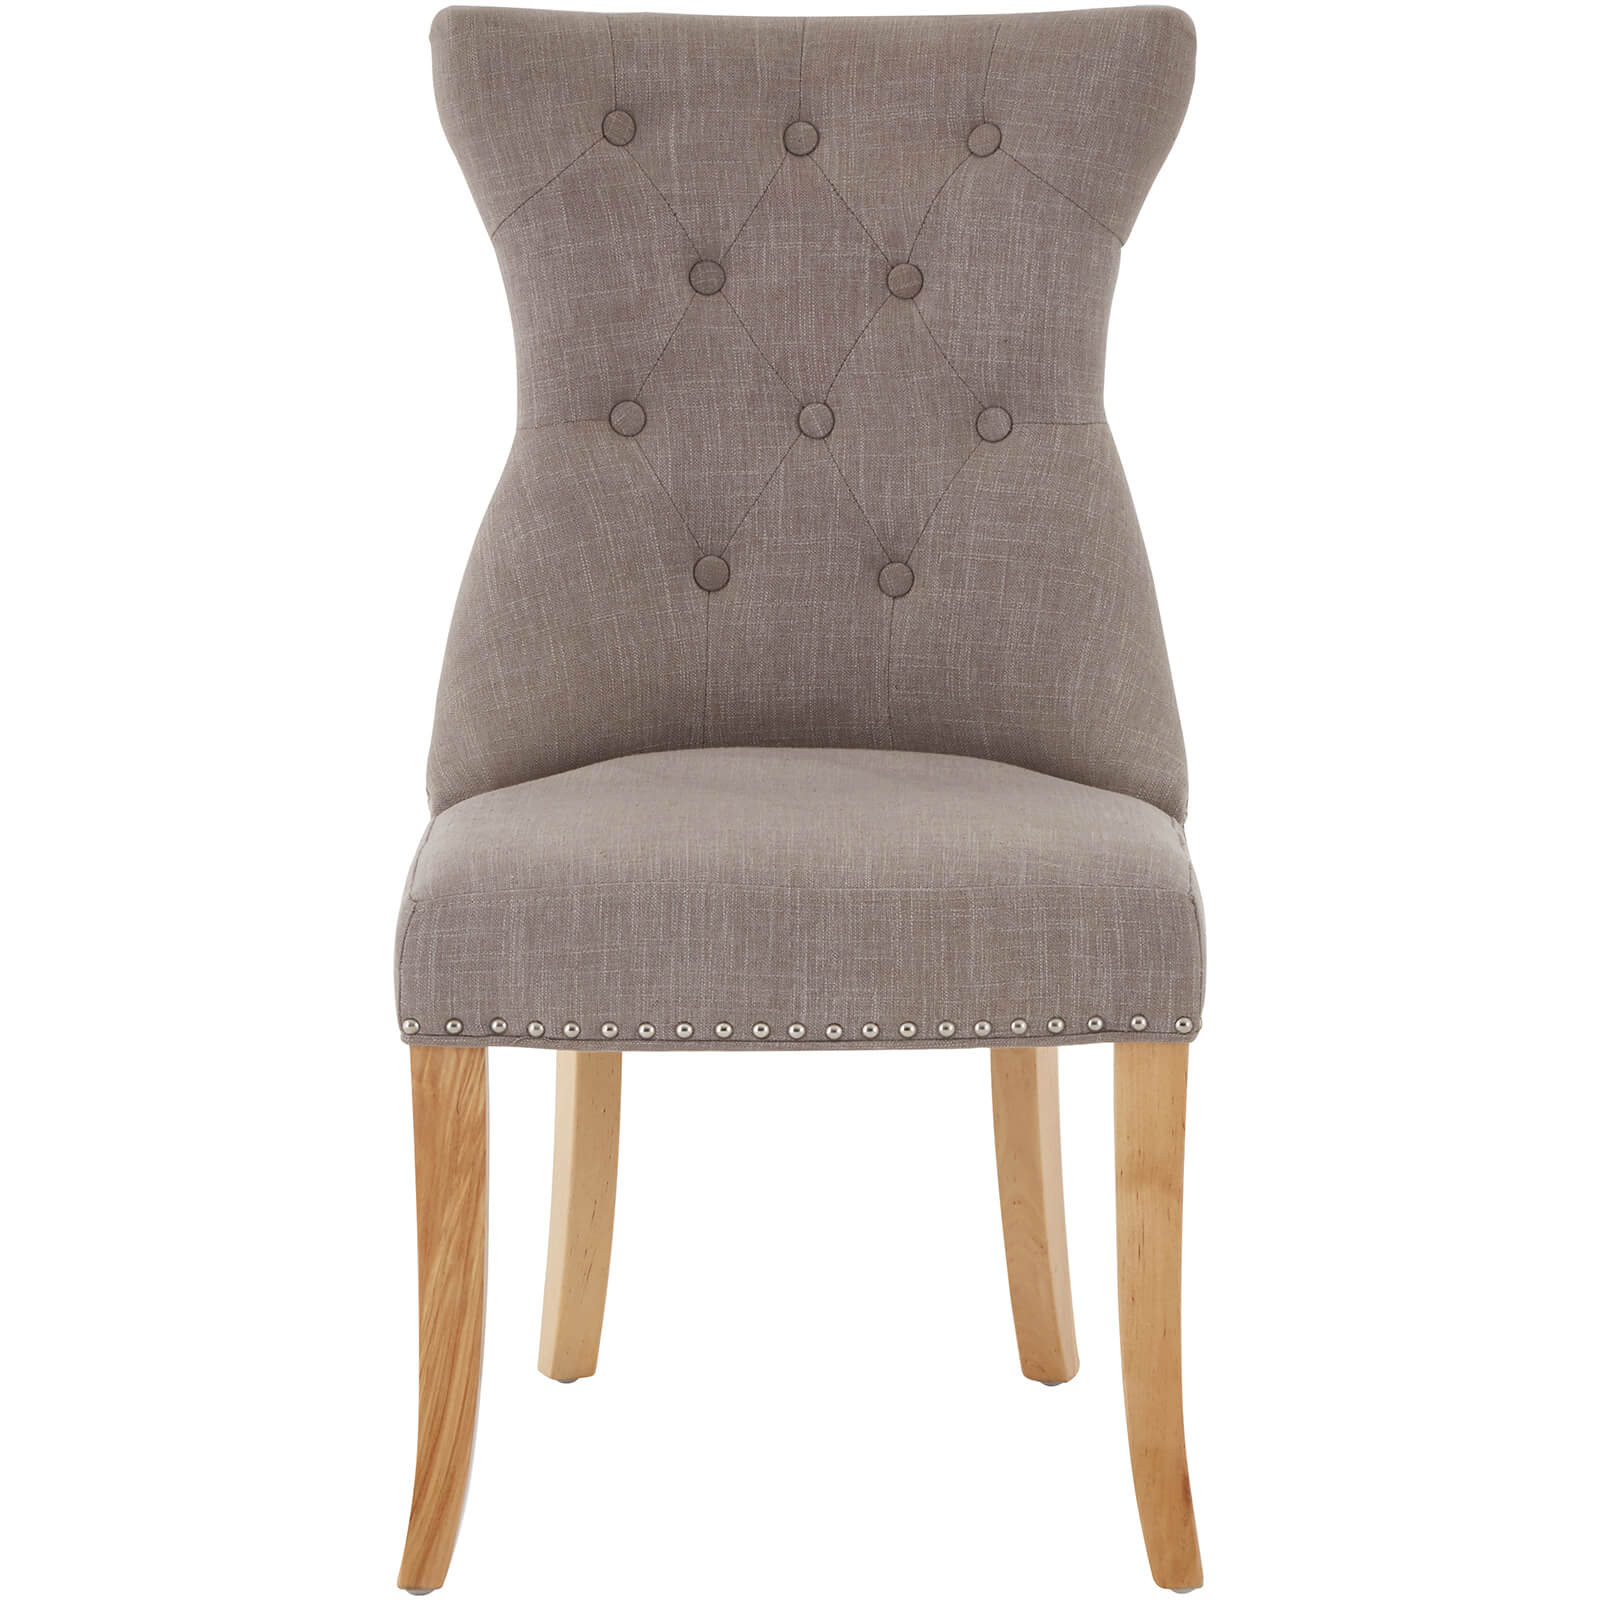 Regents Park Dining Chair with Studs - Mink Linen